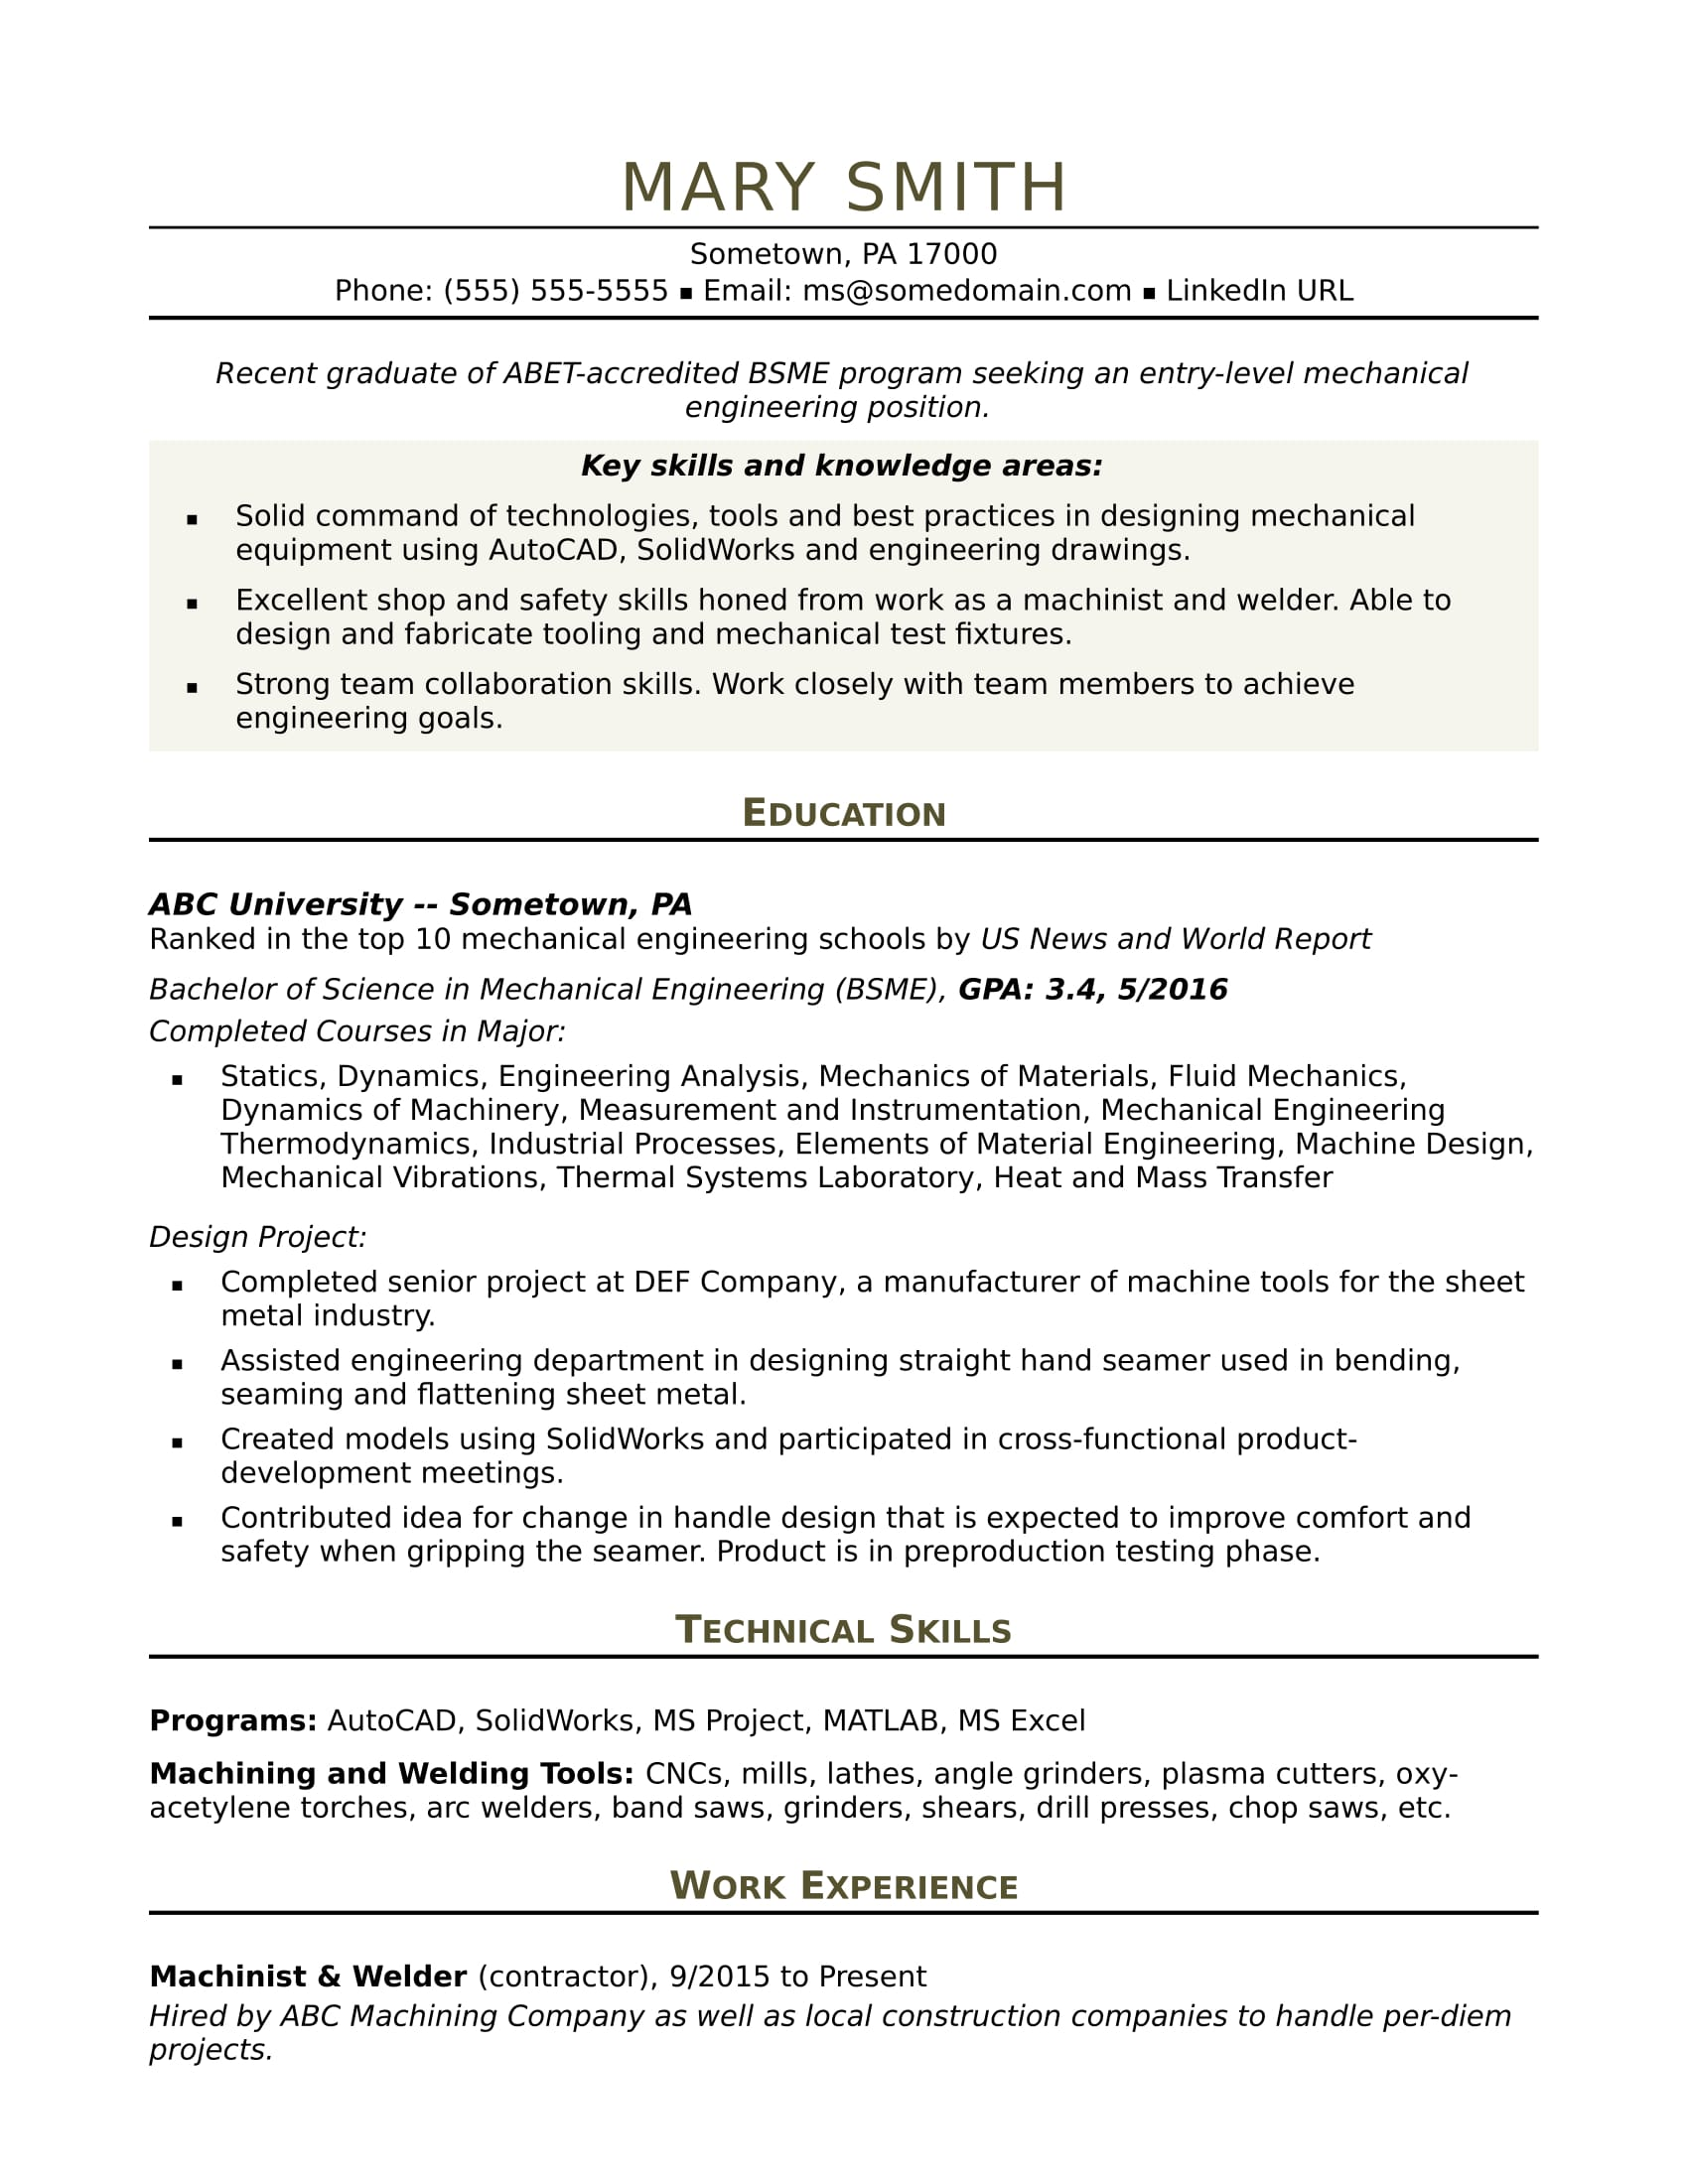 sample resume for an entry level mechanical engineer monster engineering examples Resume Entry Level Mechanical Engineering Resume Examples